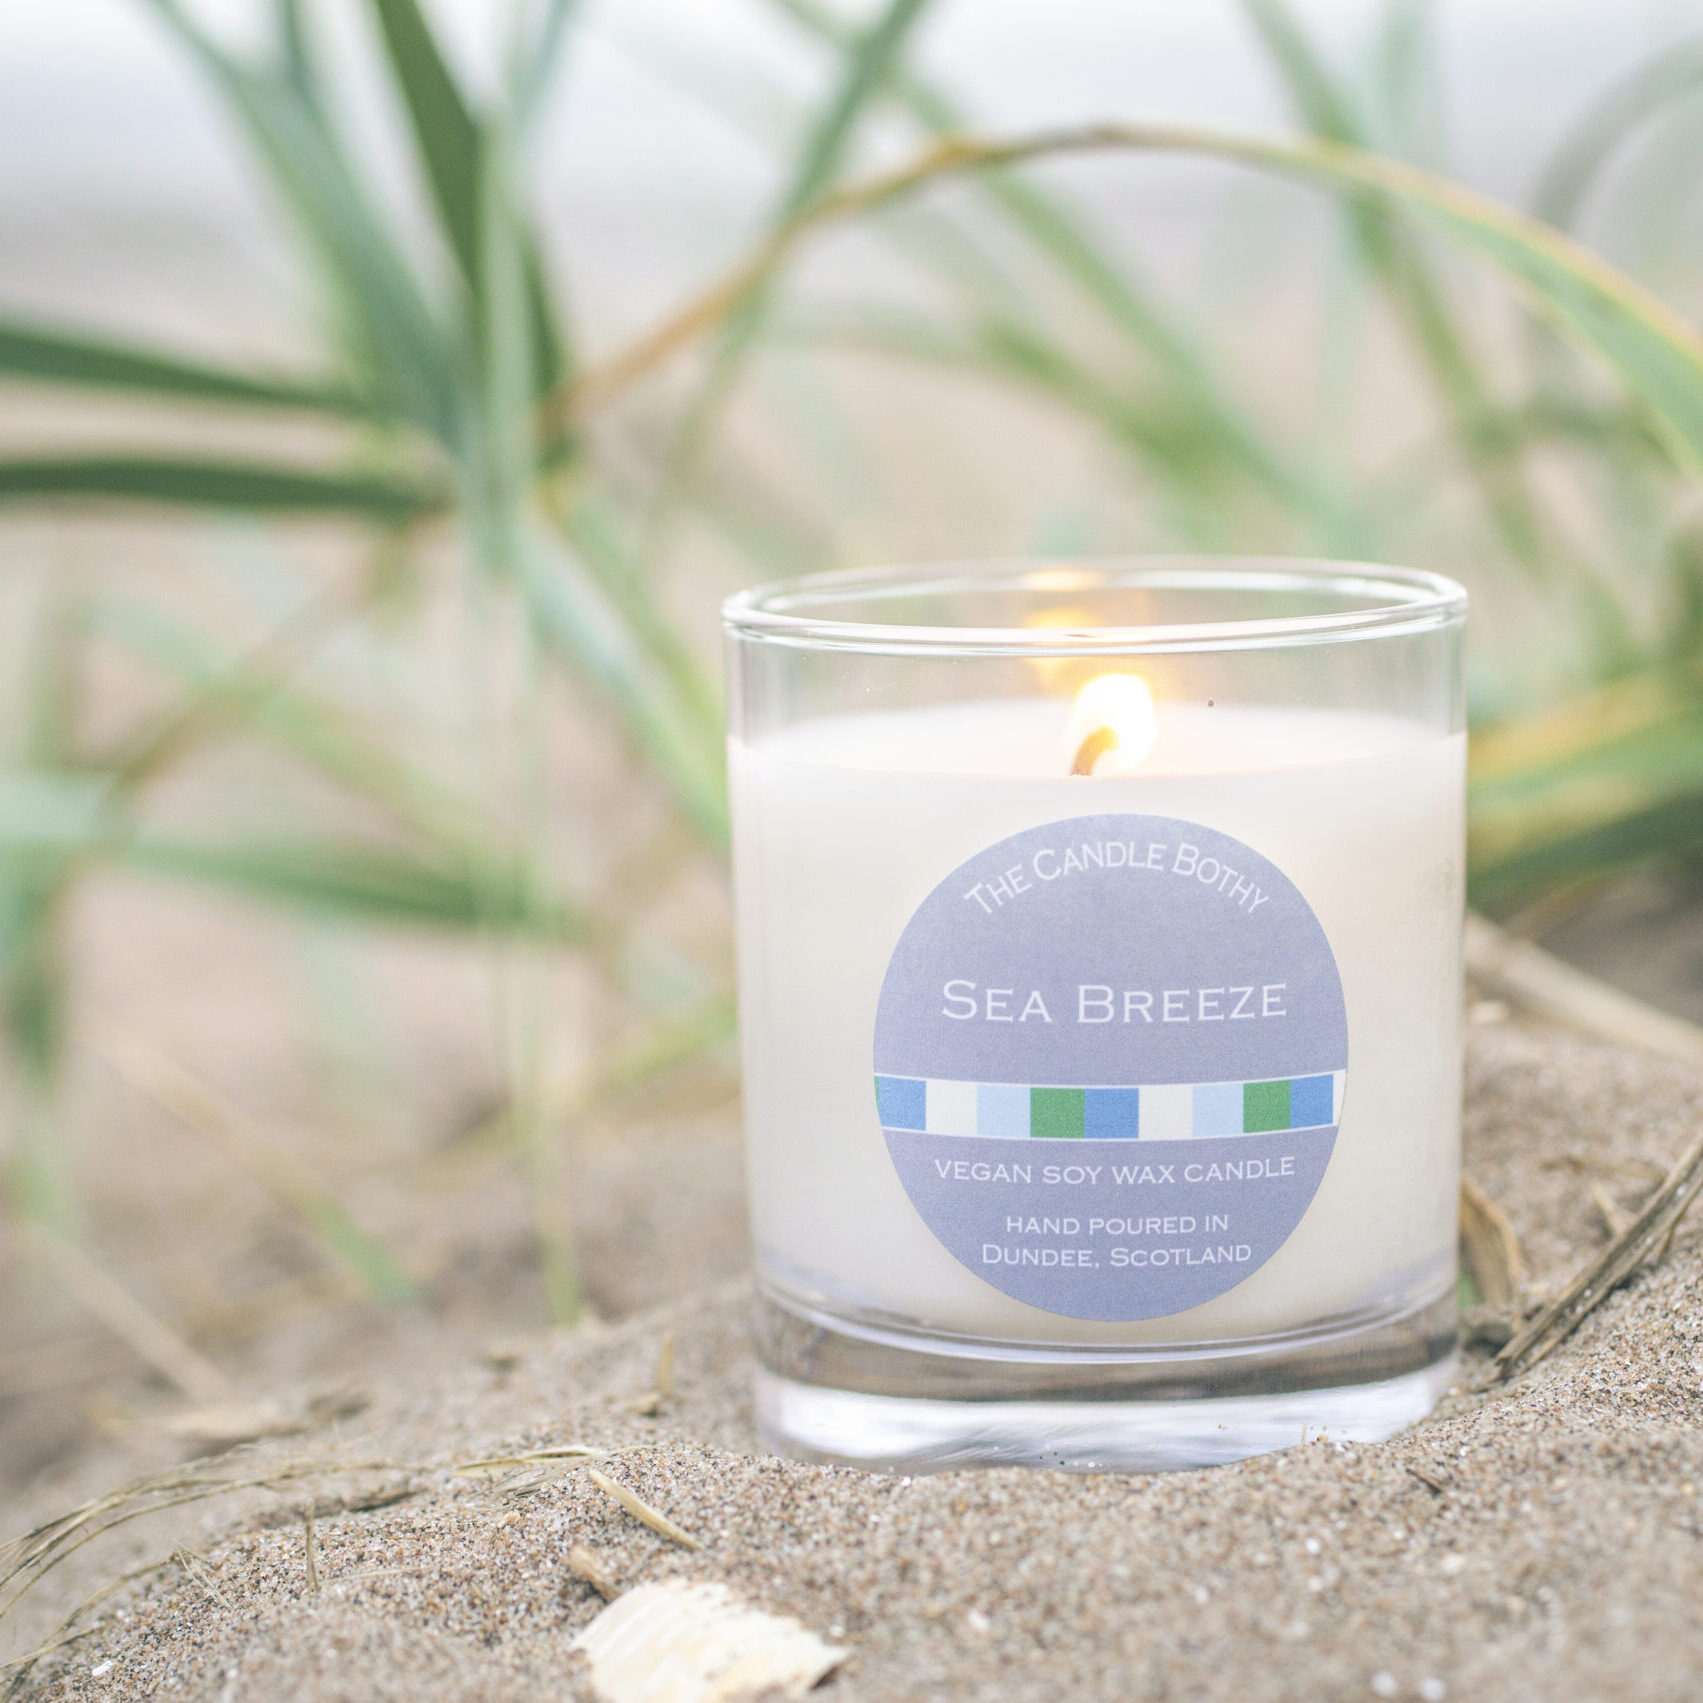 Seabreeze candle